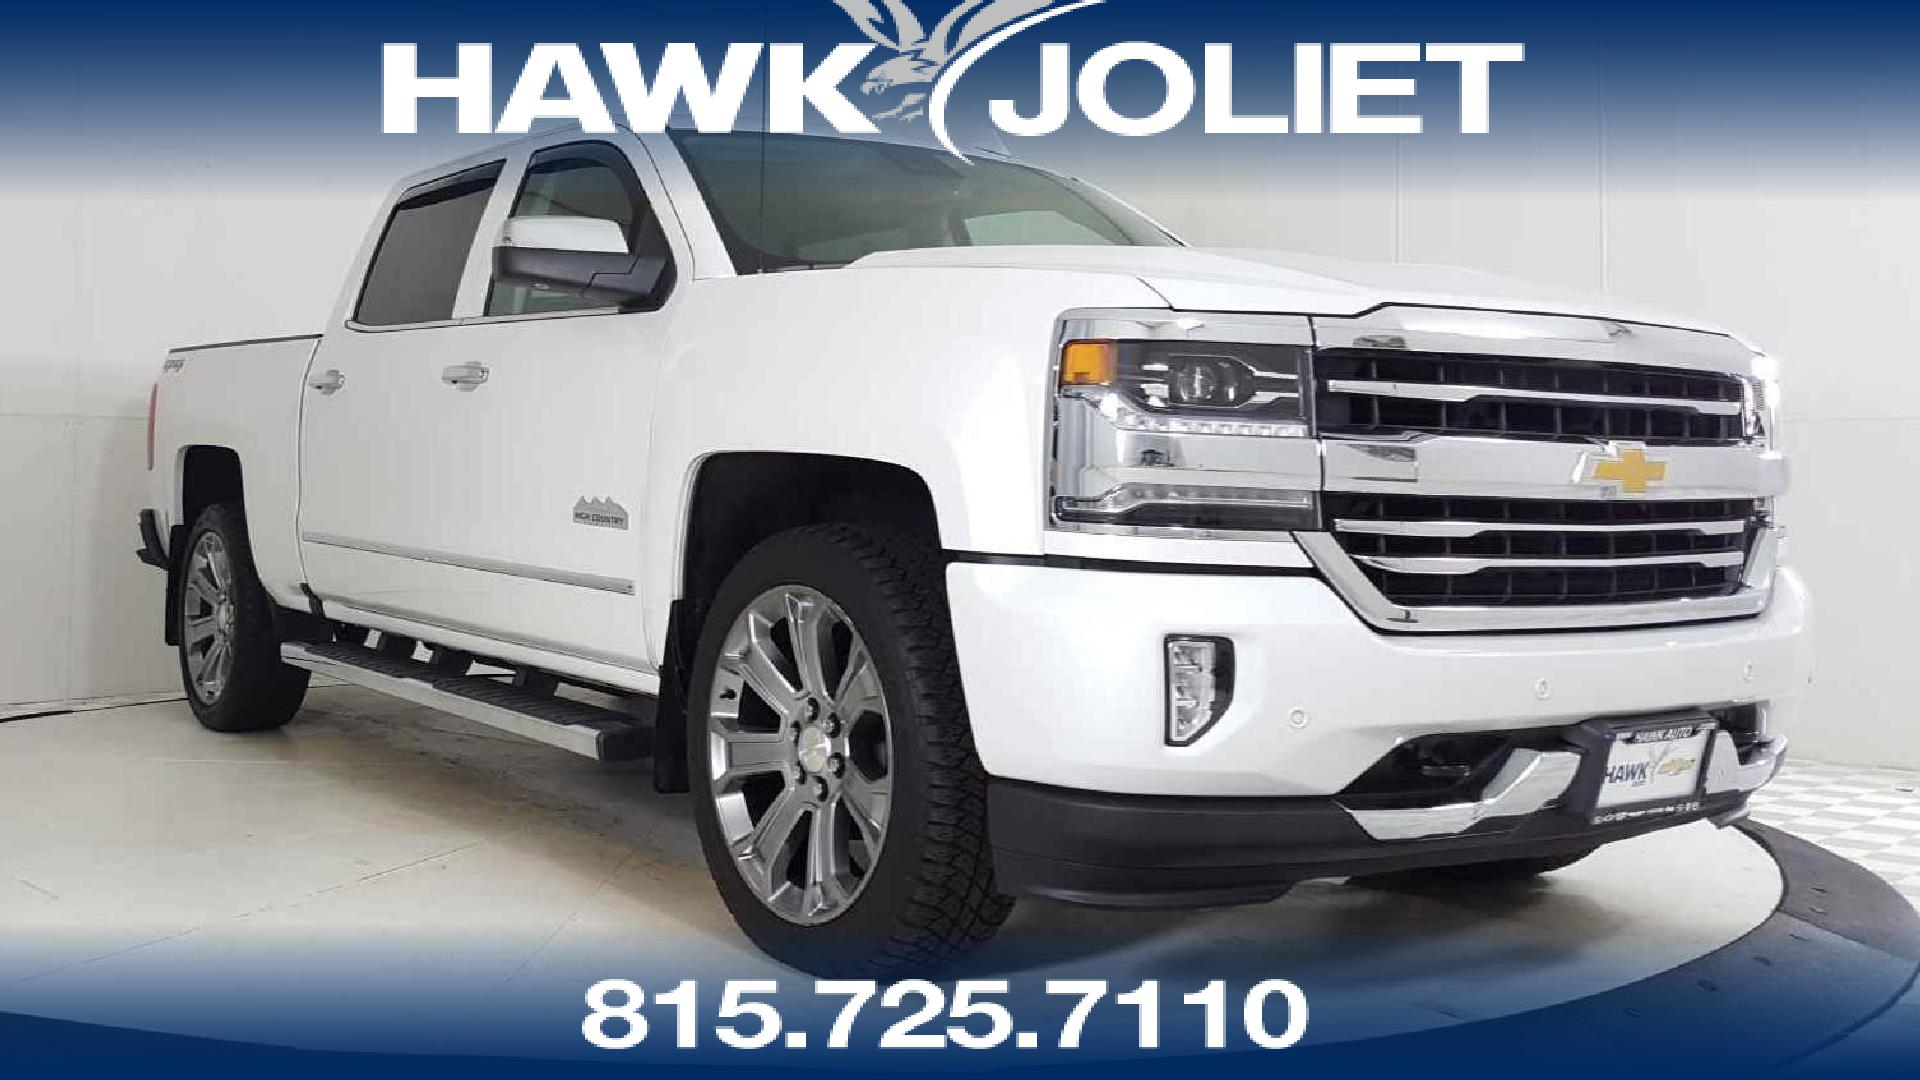 Joliet Pre owned certified Vehicles for Sale